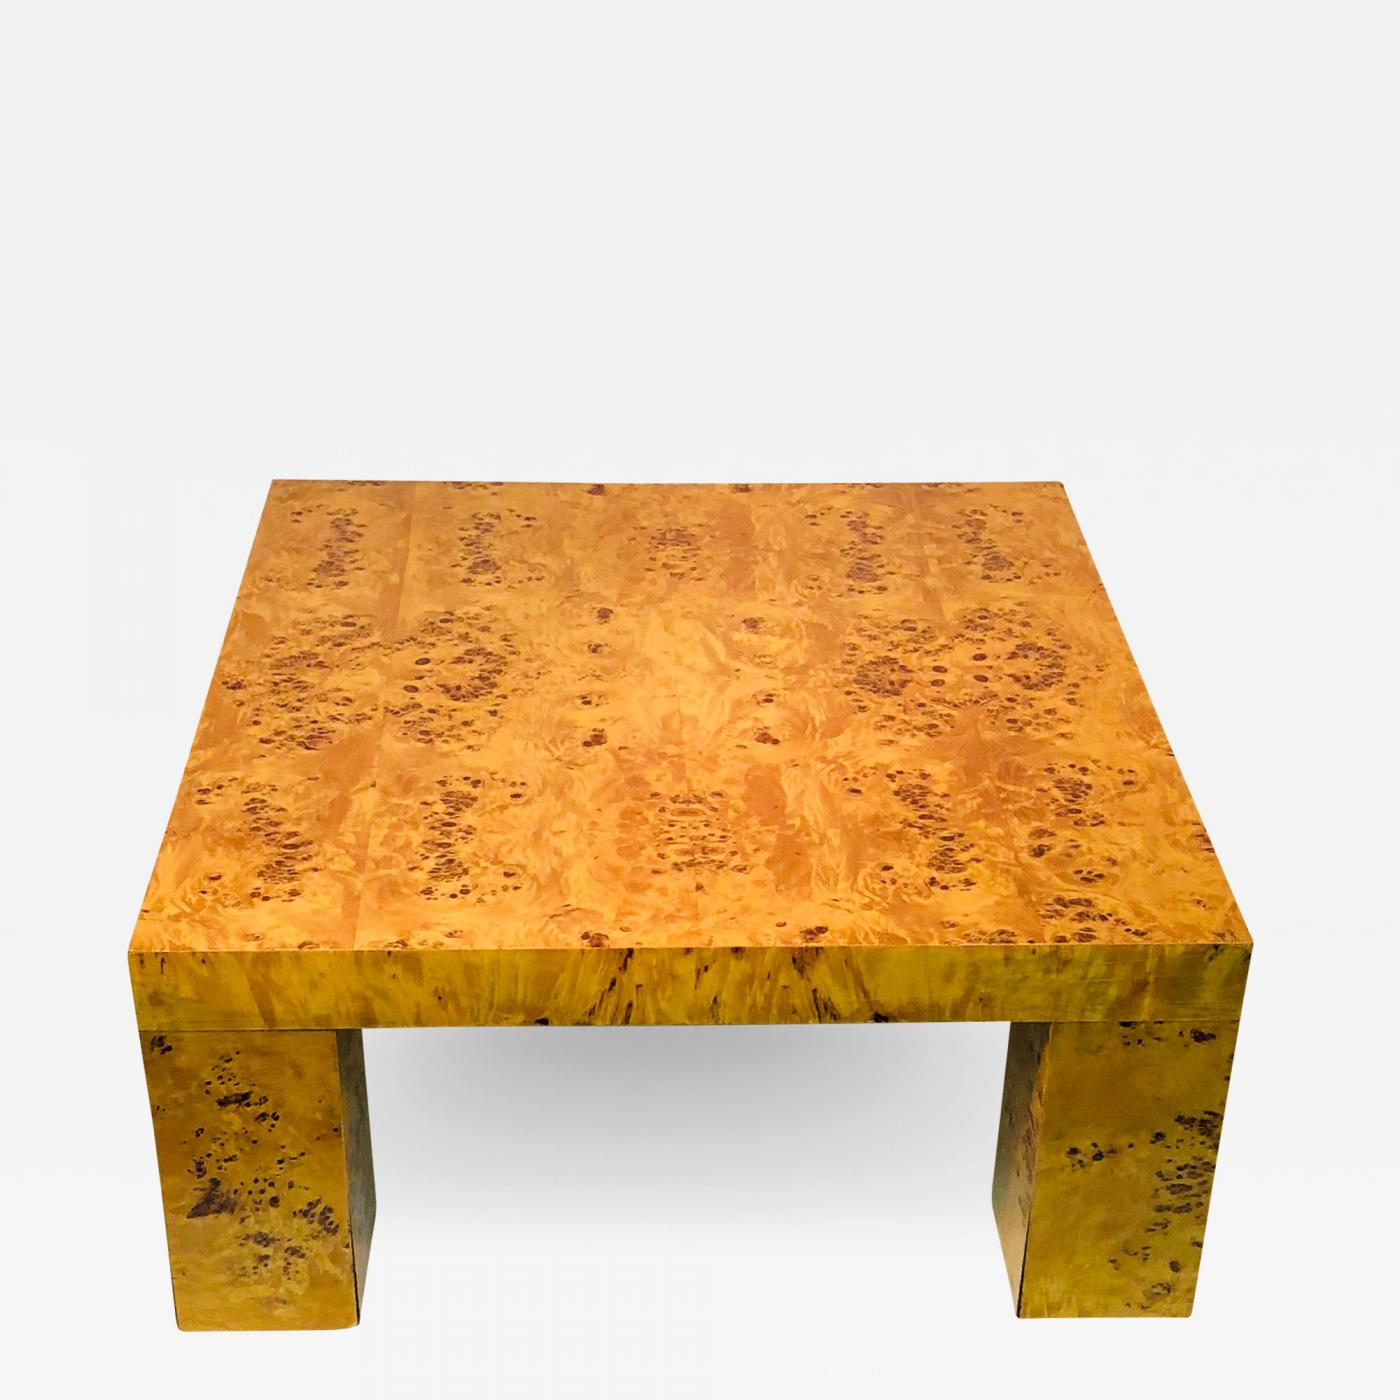 willy rizzo exceptional burl wood table accent seater dining yellow oval tablecloth parker furniture leg hardware living room center decor door stopper antique round coffee laptop